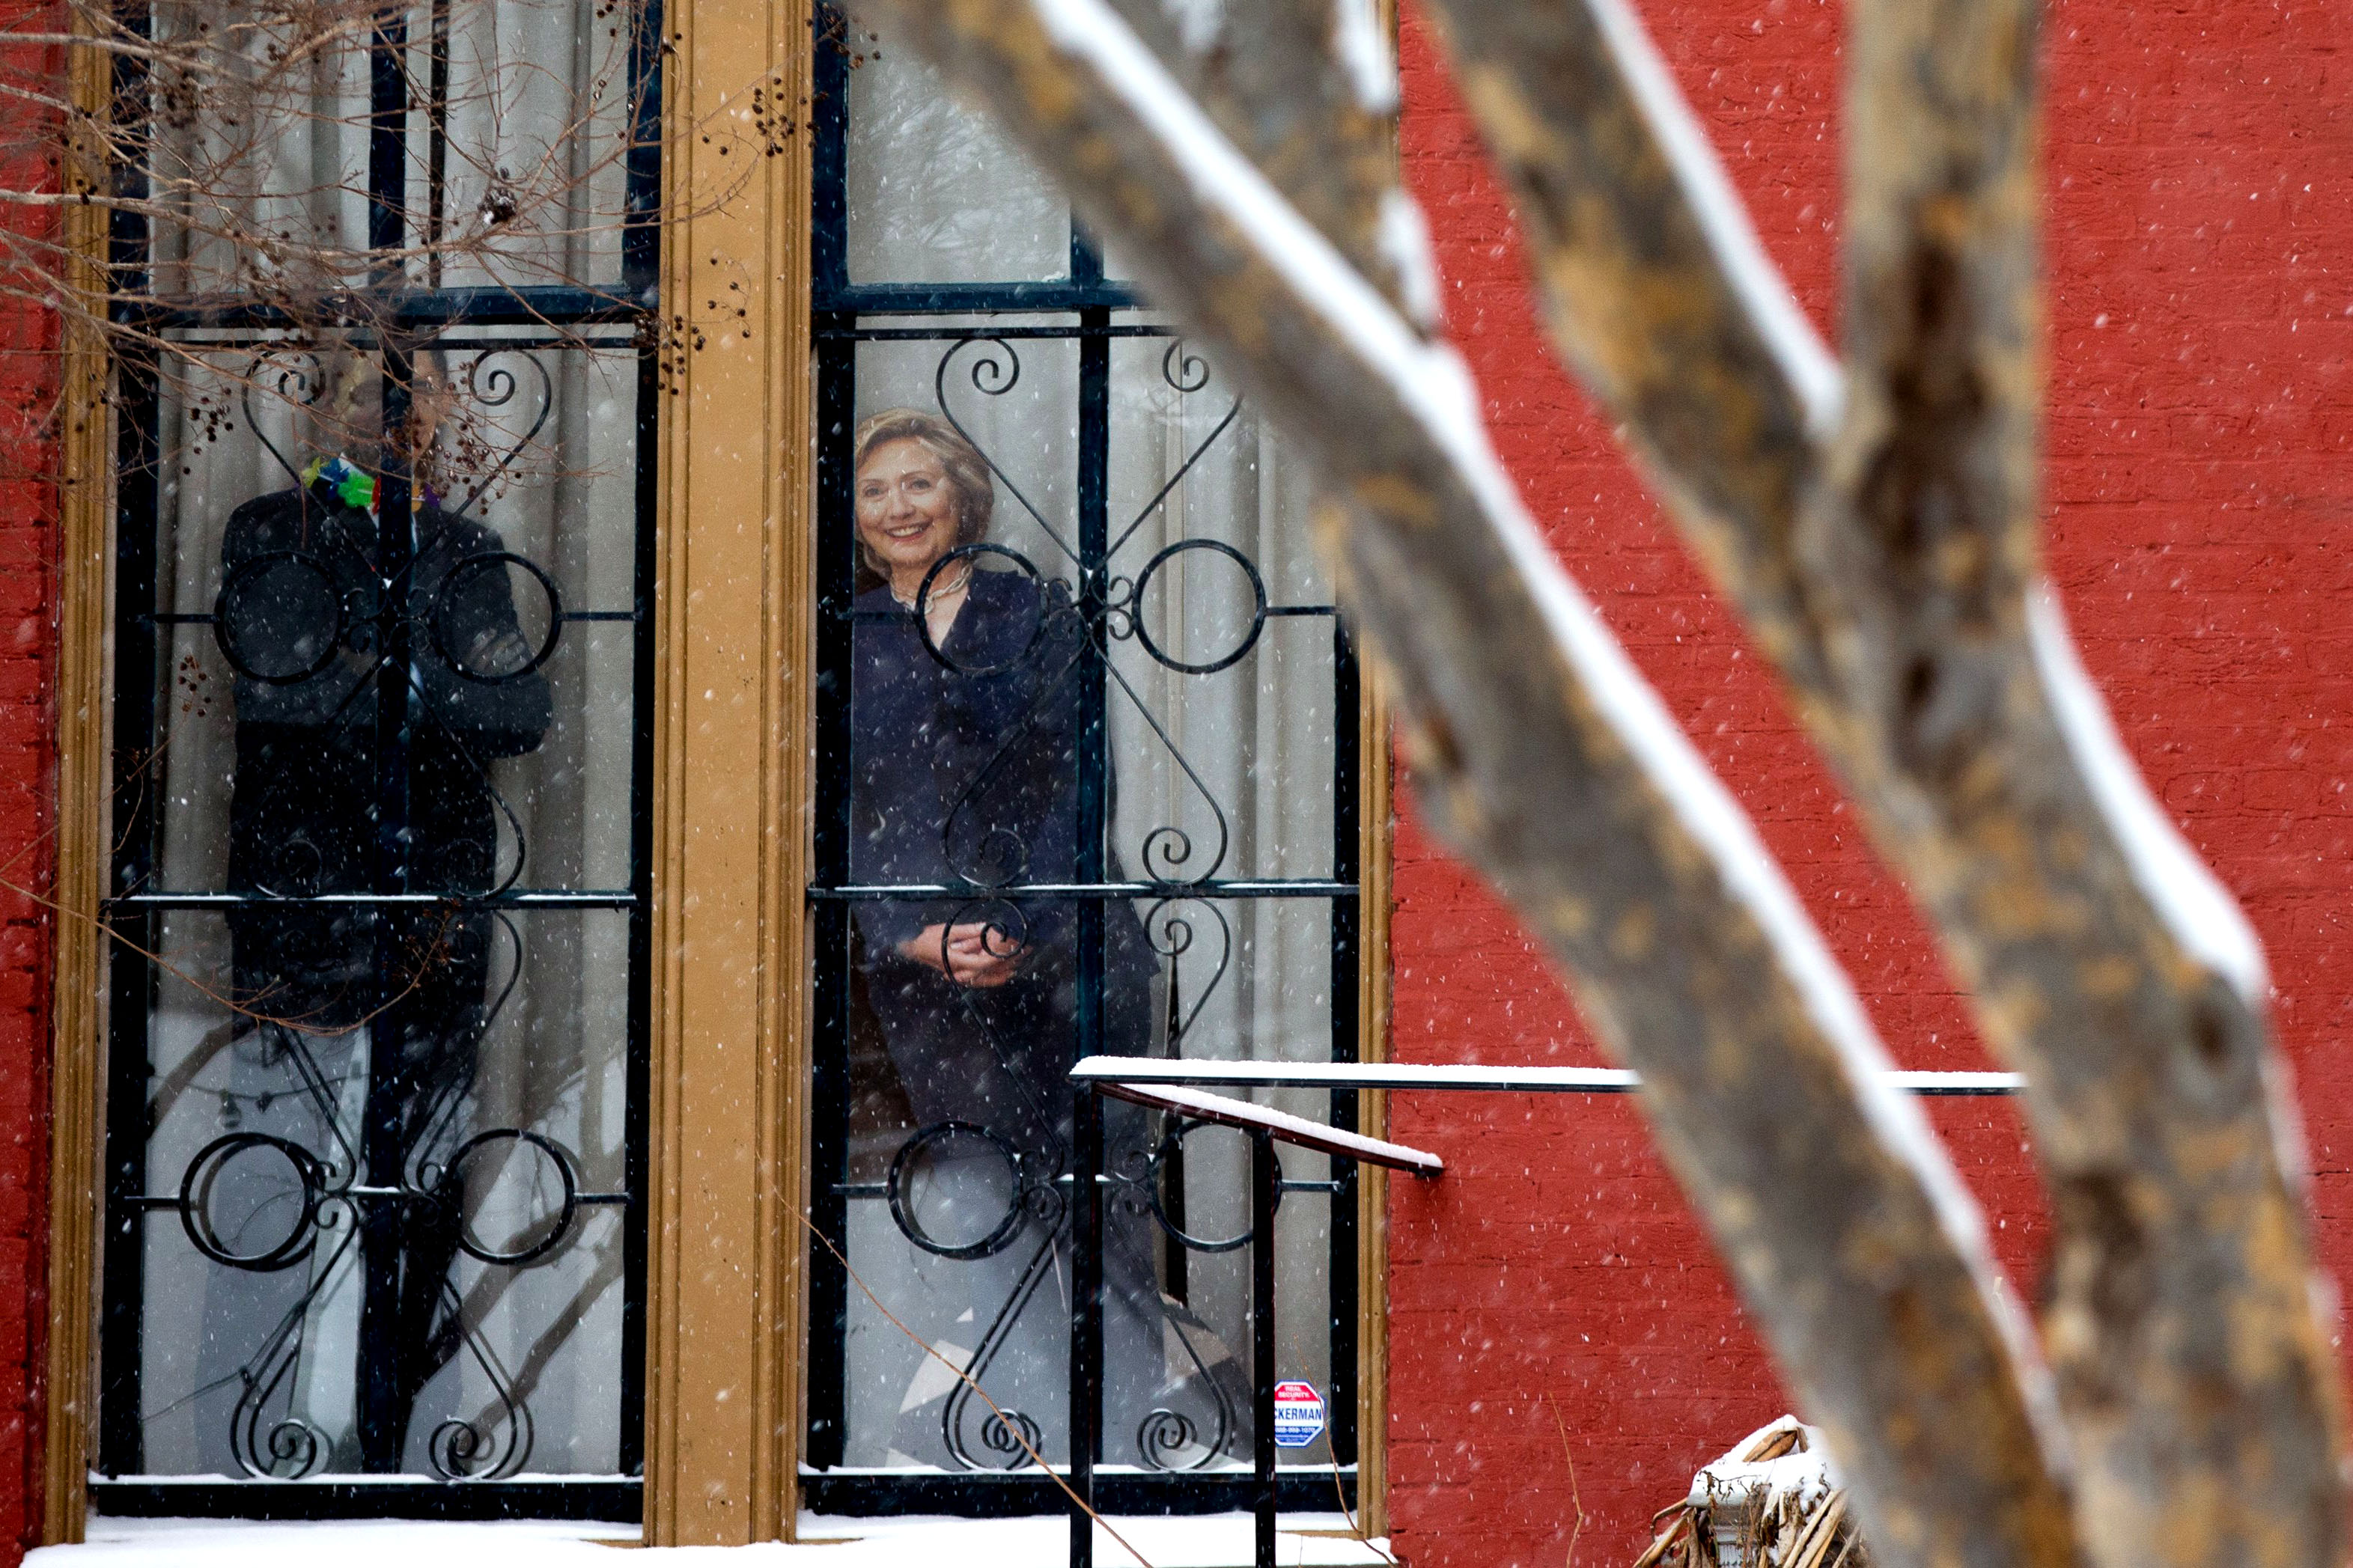 Cardboard cutouts of Democratic presidential candidate Hillary Clinton , right, and President Barack Obama are positioned in a window in the LeDroit Park neighborhood in Washington on Feb. 15, 2016.